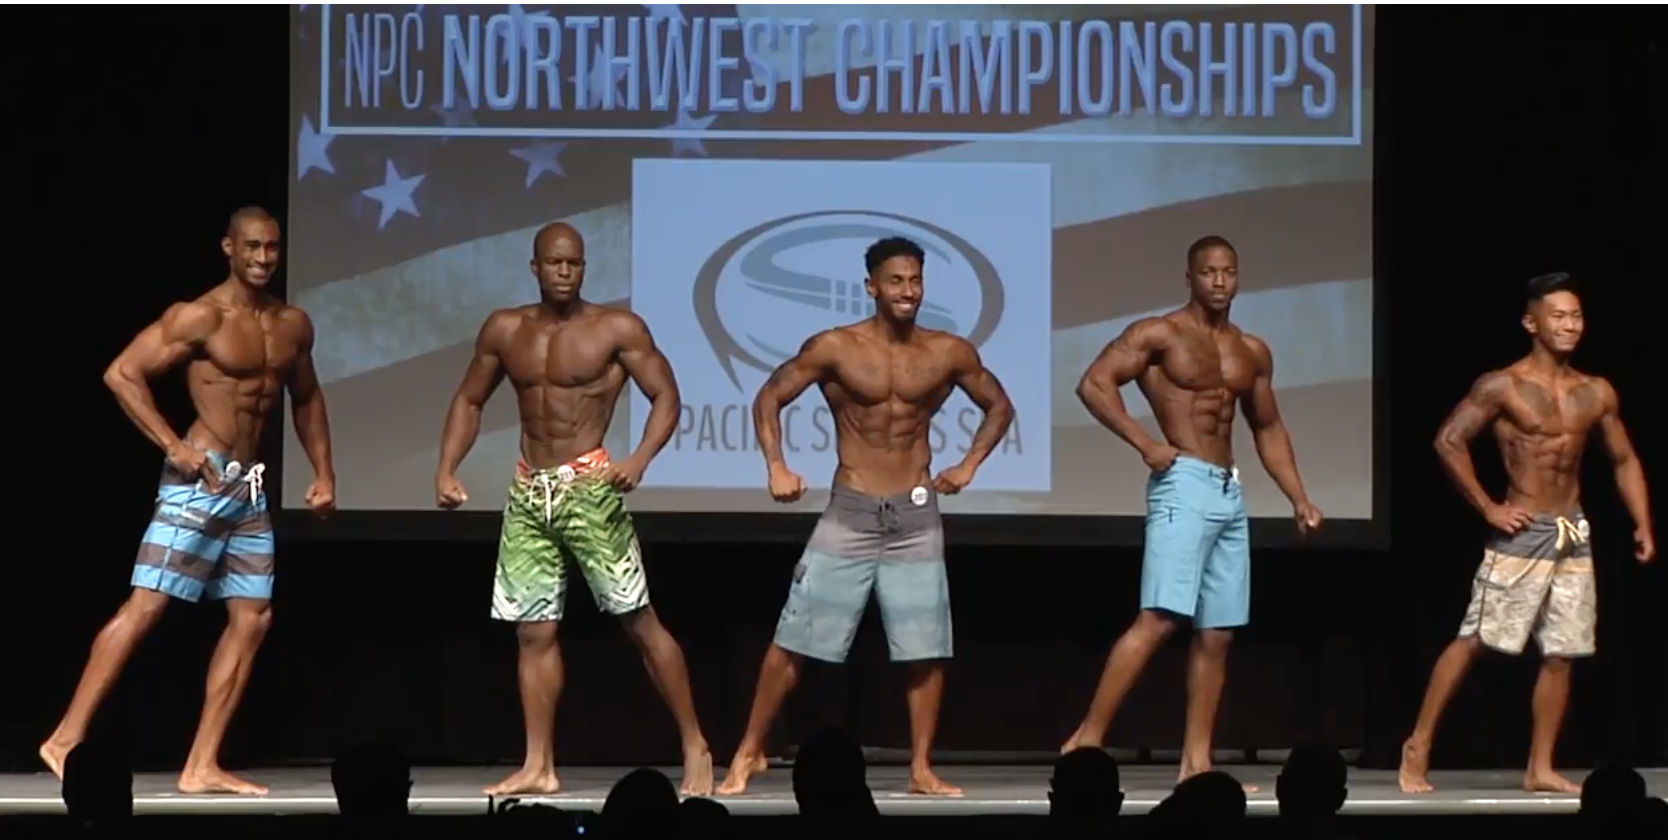 2017 NPC Northwest Championship Men's Physique Overall Video